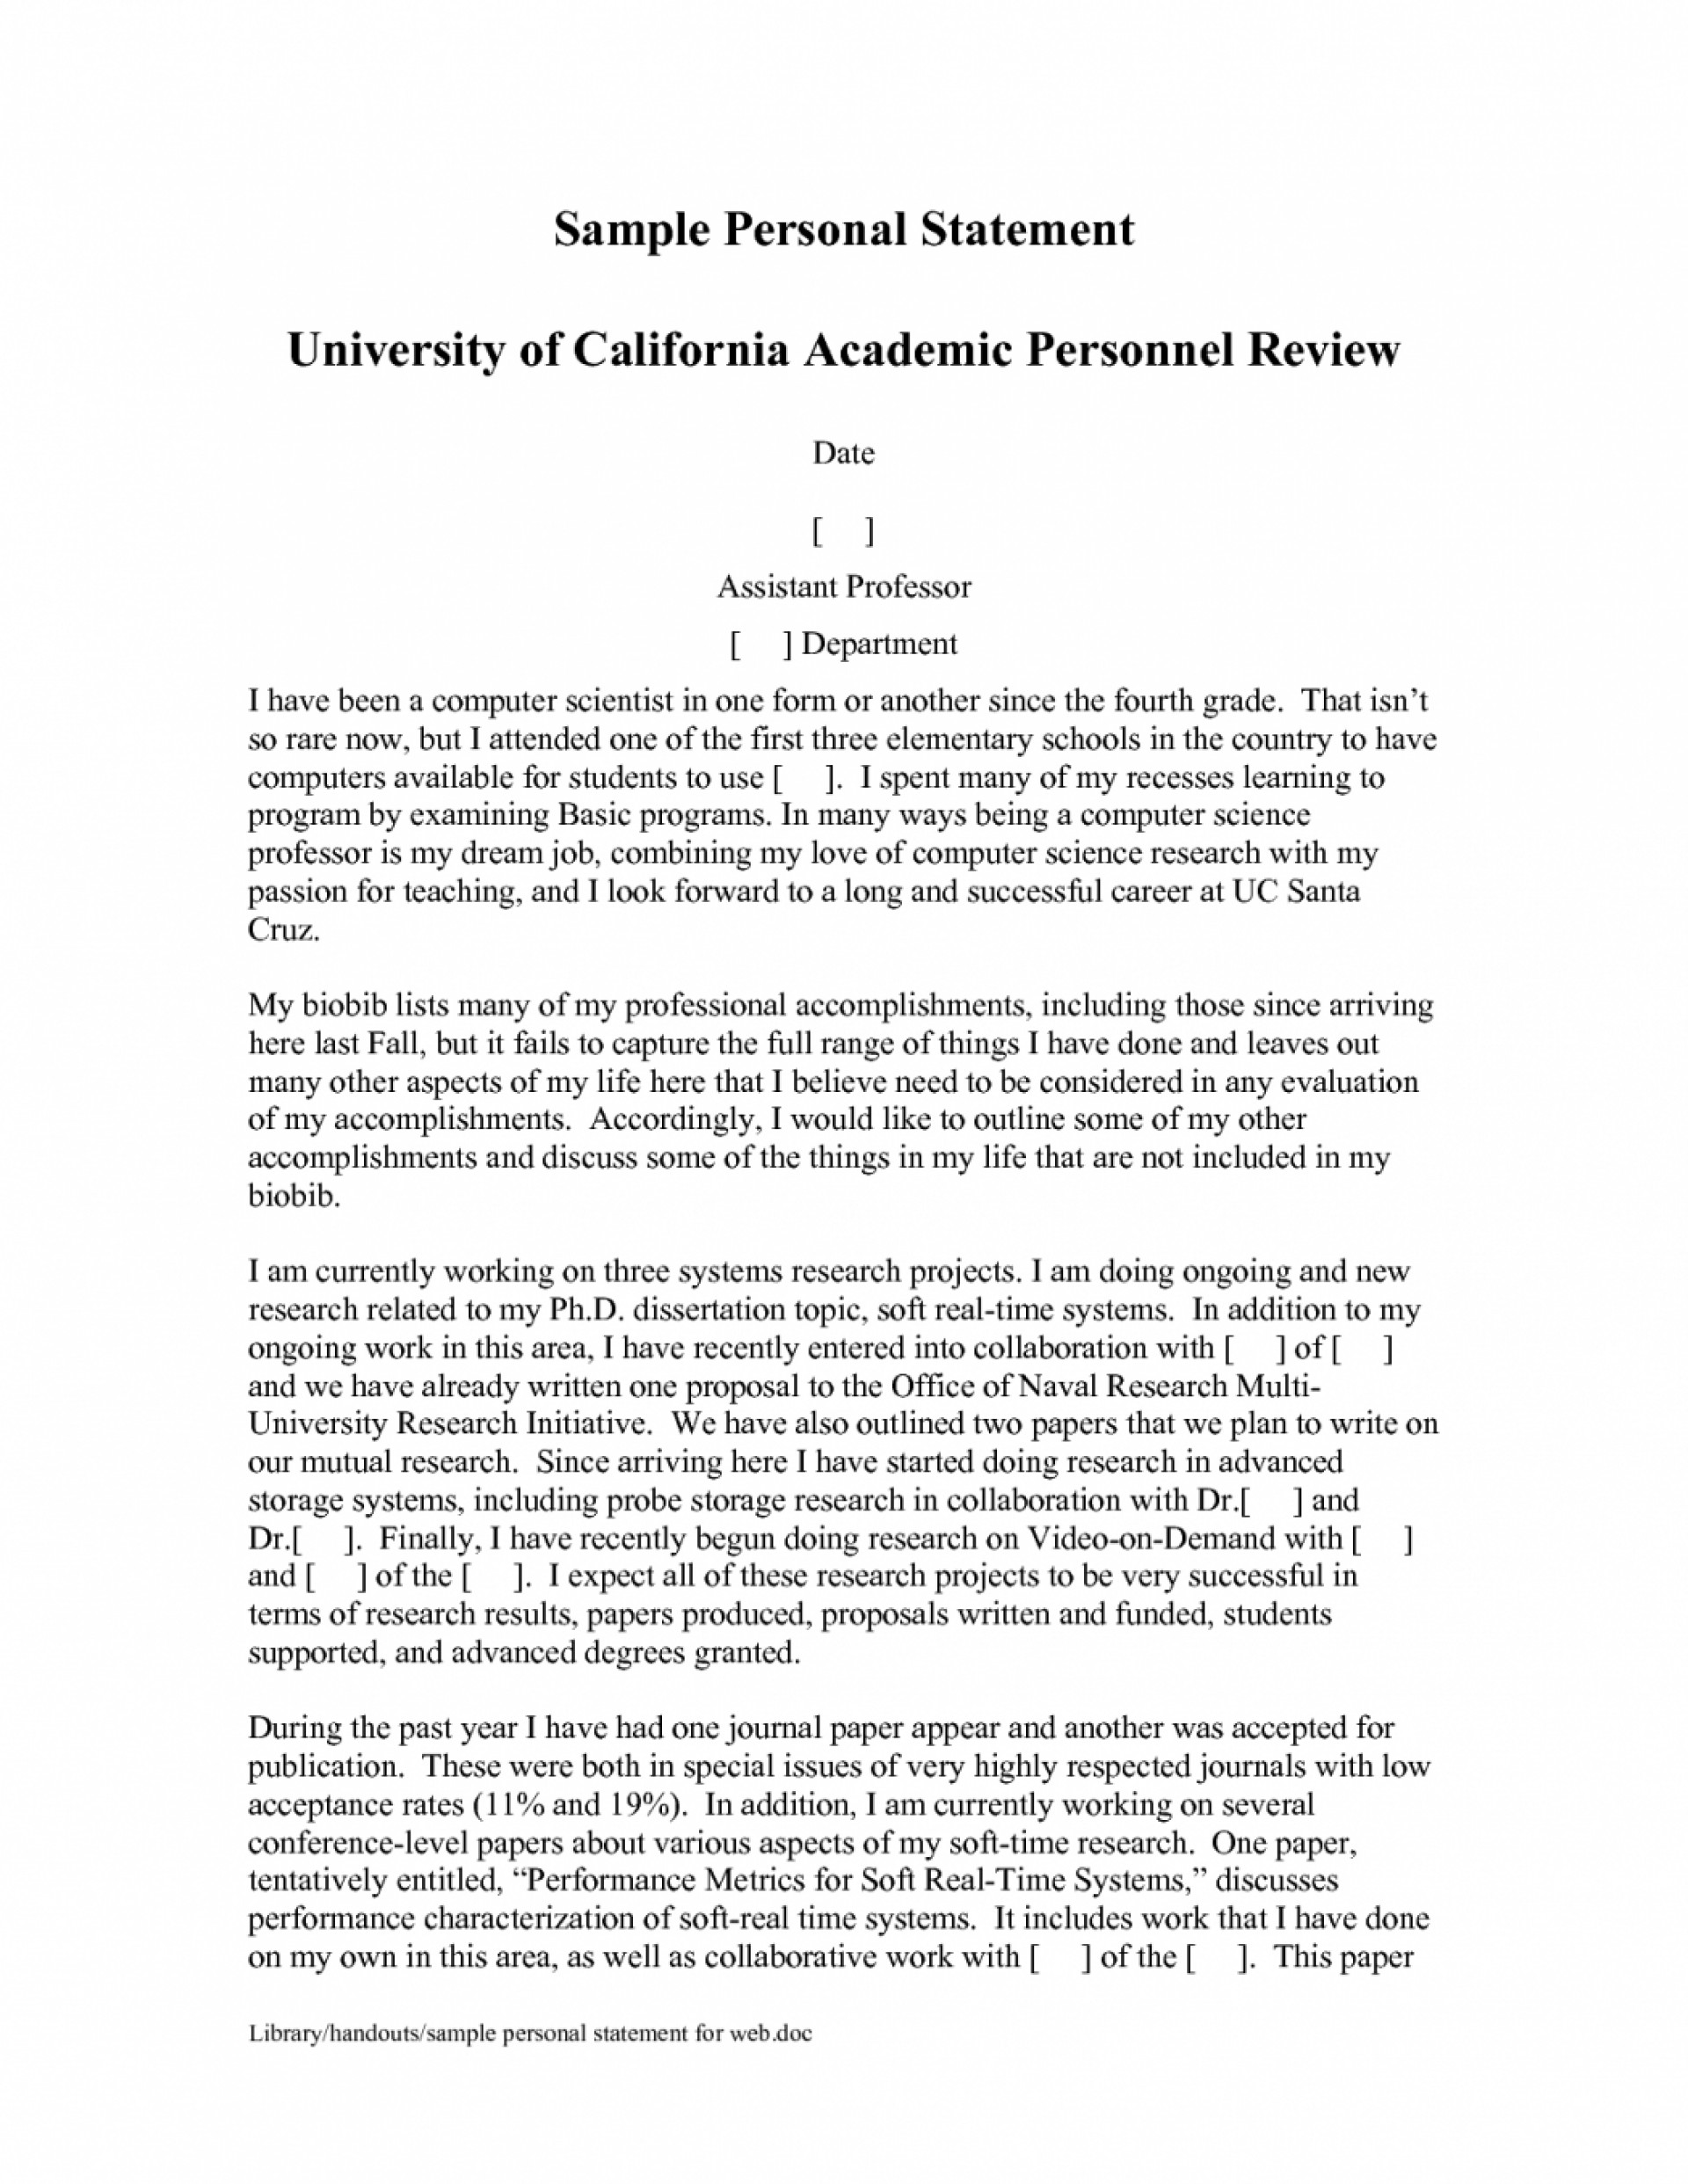 005 Essay Example Word How To Write Personal Profile Examples An On Microsoft Of Statements For Graduate School Template 0mc Definition Accent Choice Good One Incredible 3000 Double Spaced Pages 1920